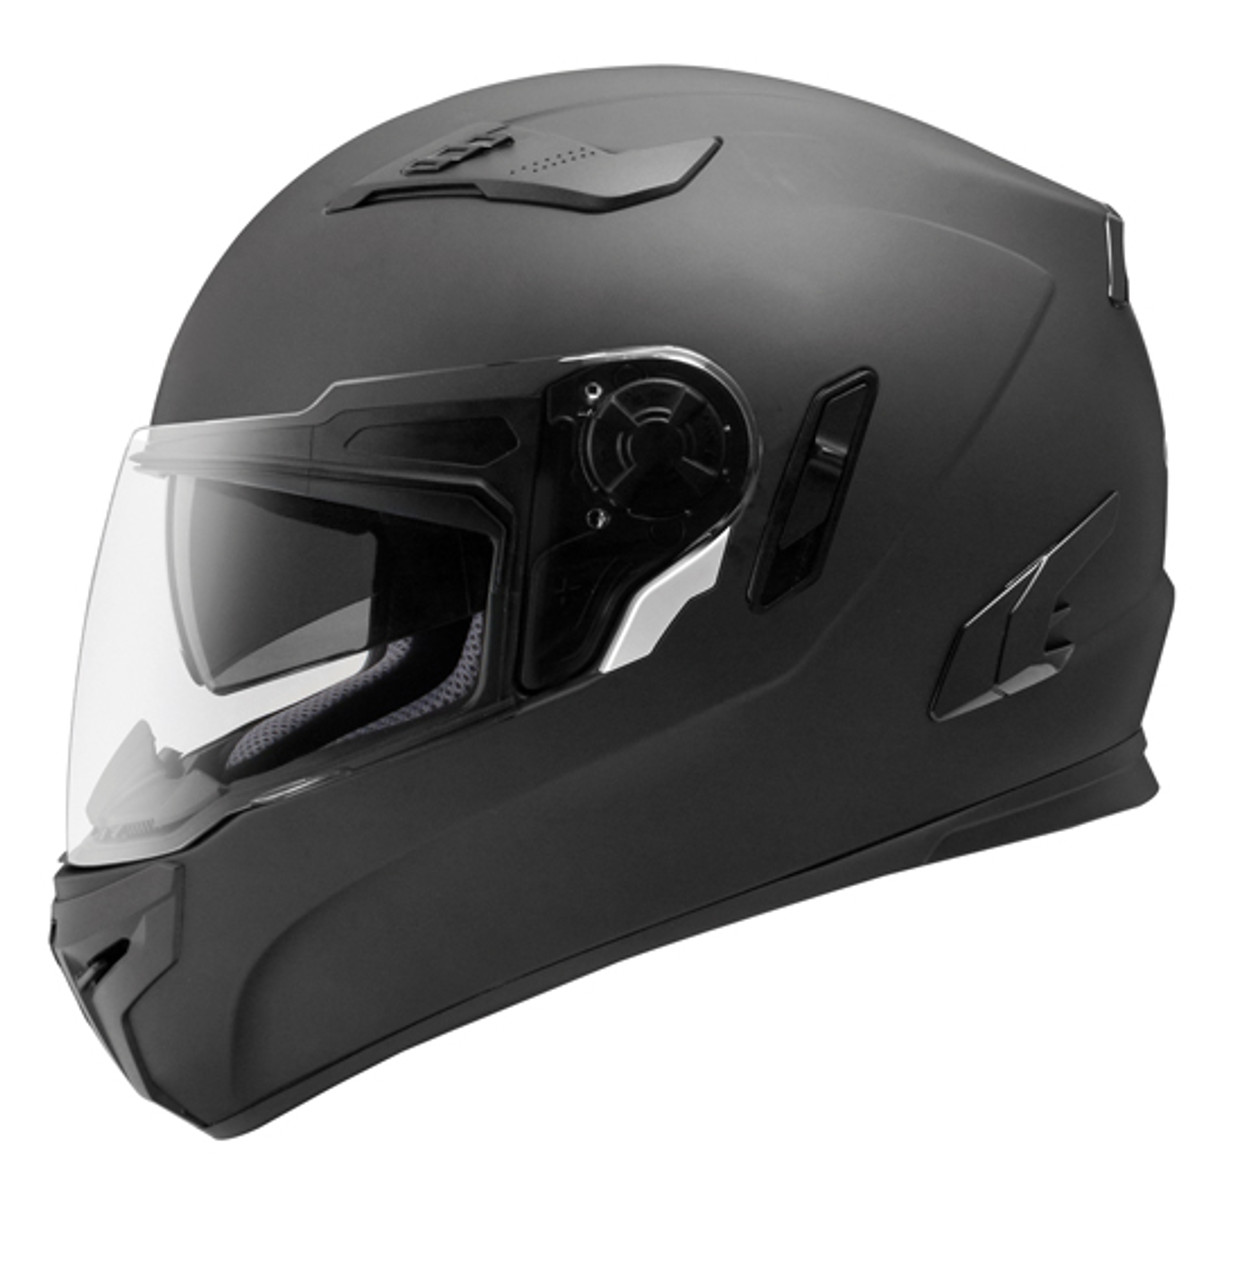 Streetpro R Full Face Helmet, with Internal Tinted Visor, Matt Black